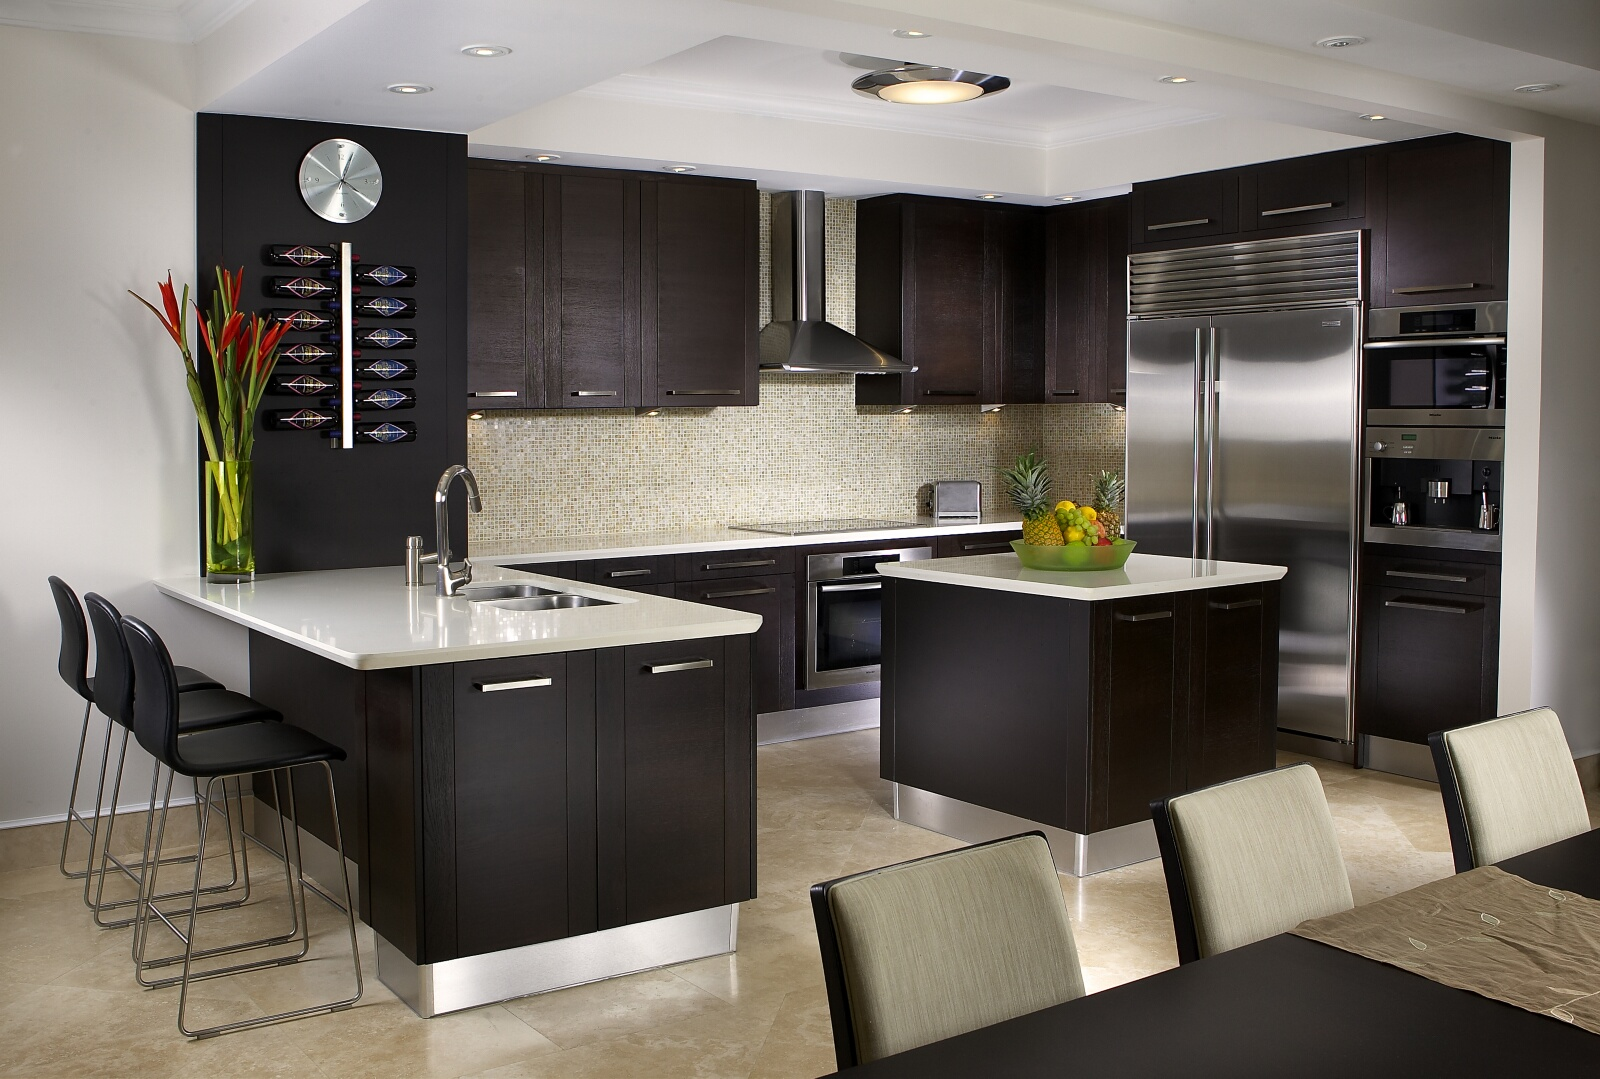 Kitchen interior design services miami florida for Kitchenette layout